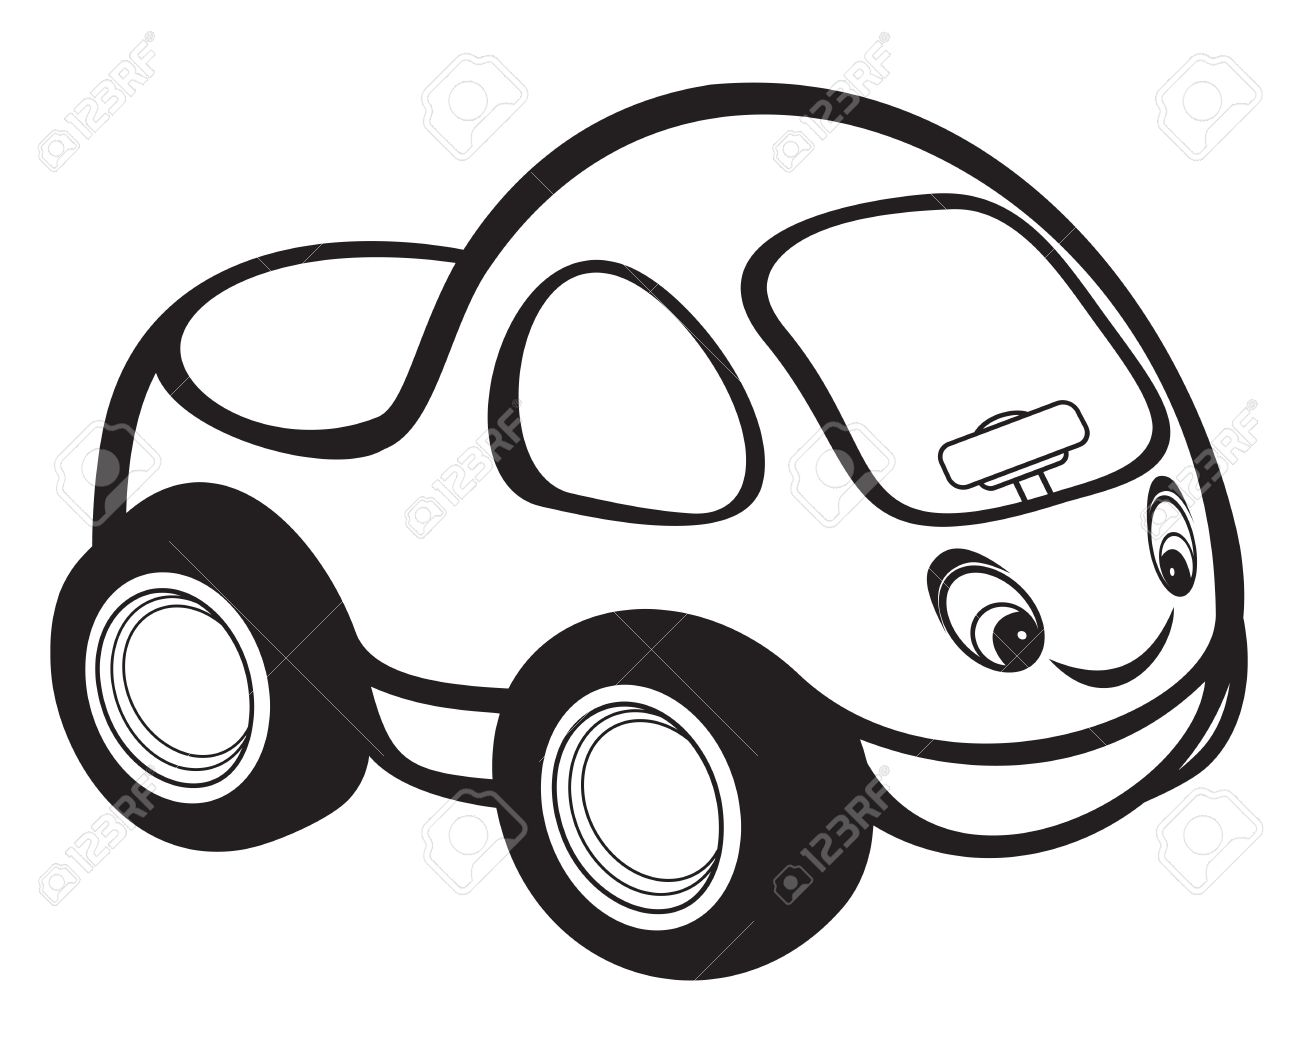 Clipart Car Black And White Royalty Free.